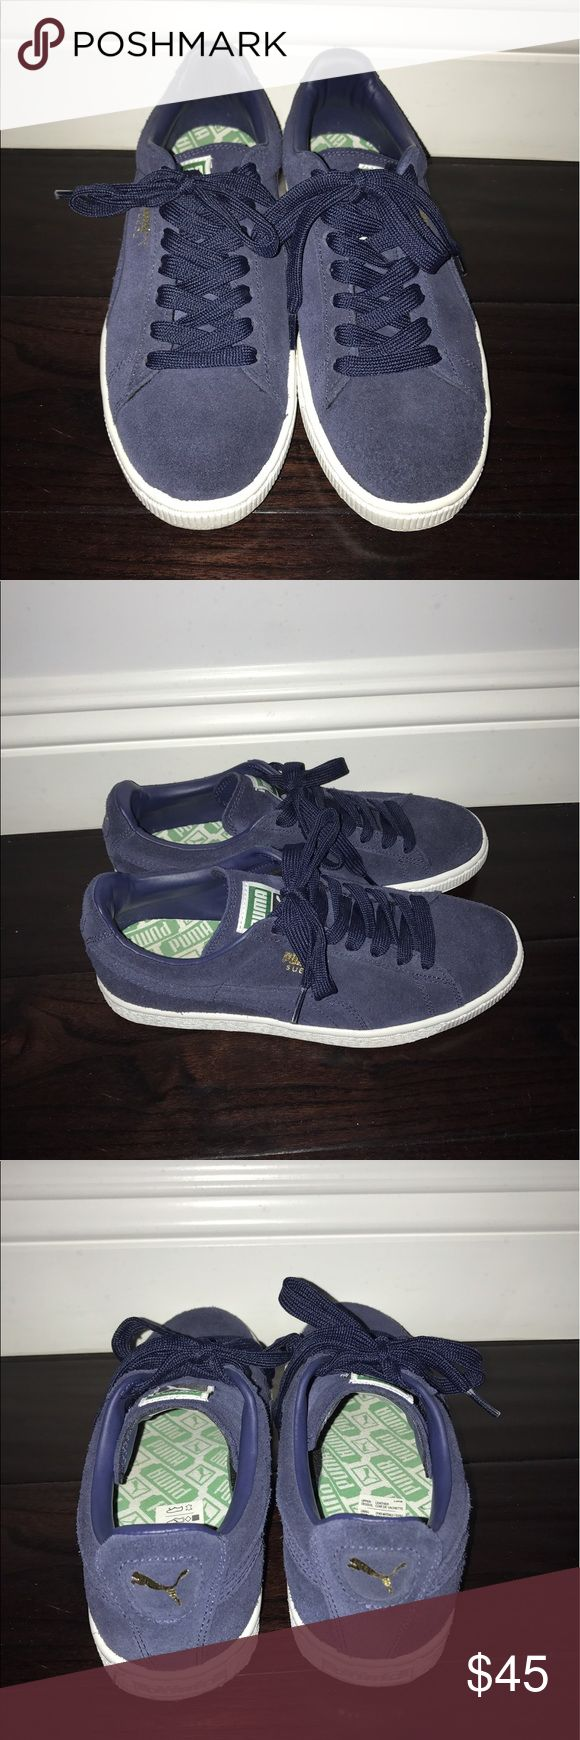 Blue Puma Suede Classic In great condition. Only worn once. Mens size 6/Womens size 7.5 Puma Shoes Sneakers